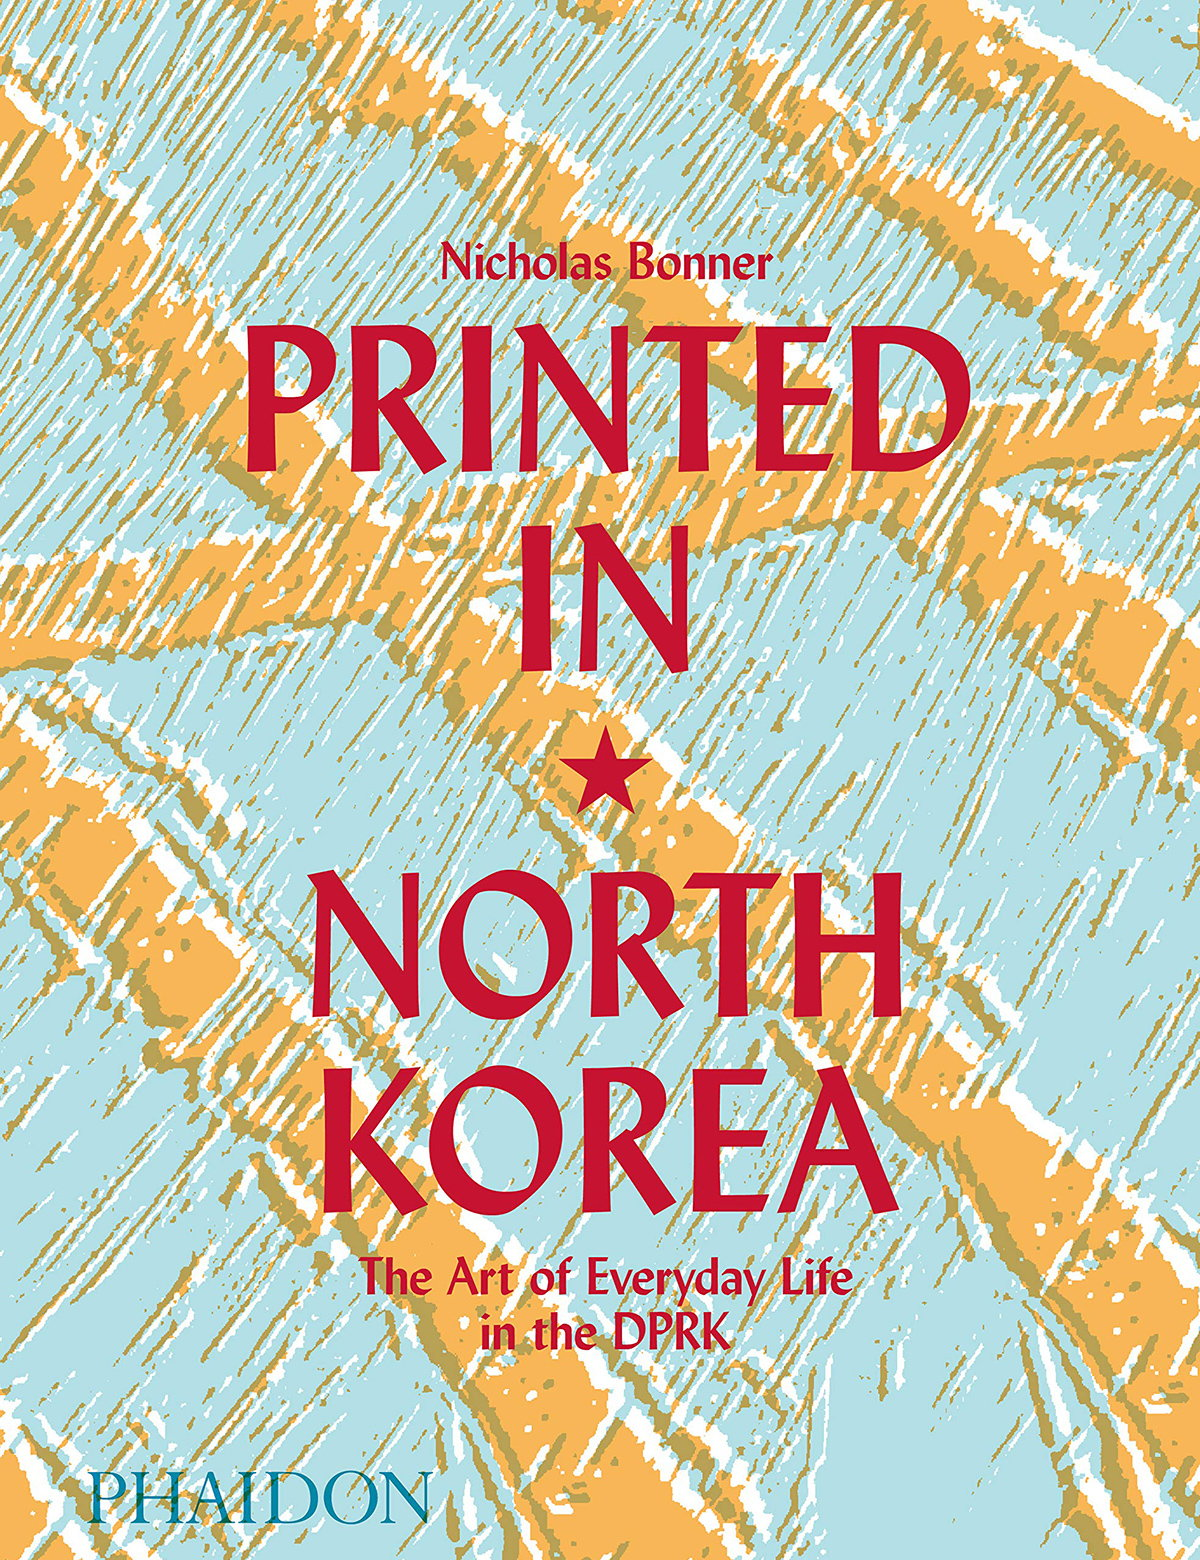 Printed in North Korea - The Art of Everyday Life in the DPRK